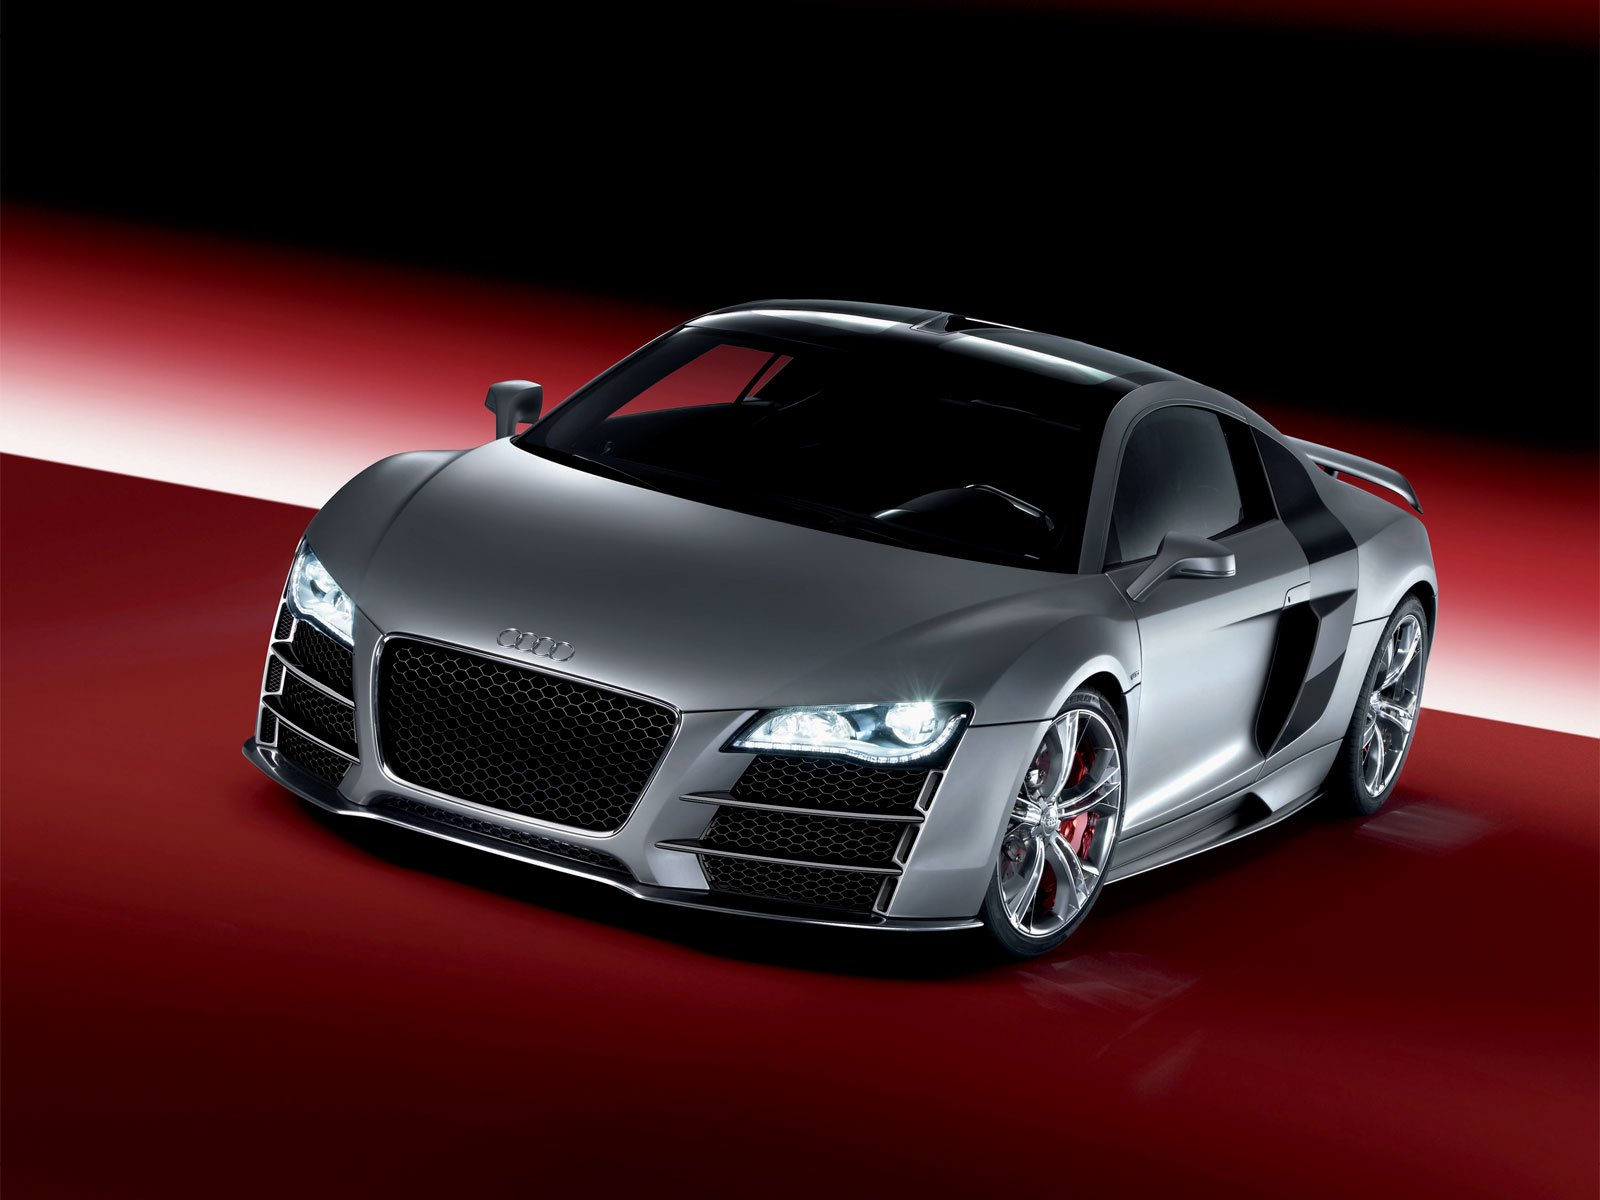 Latest Audi R8 V12 Wallpaper Cars Hd Wallpapers Free Download